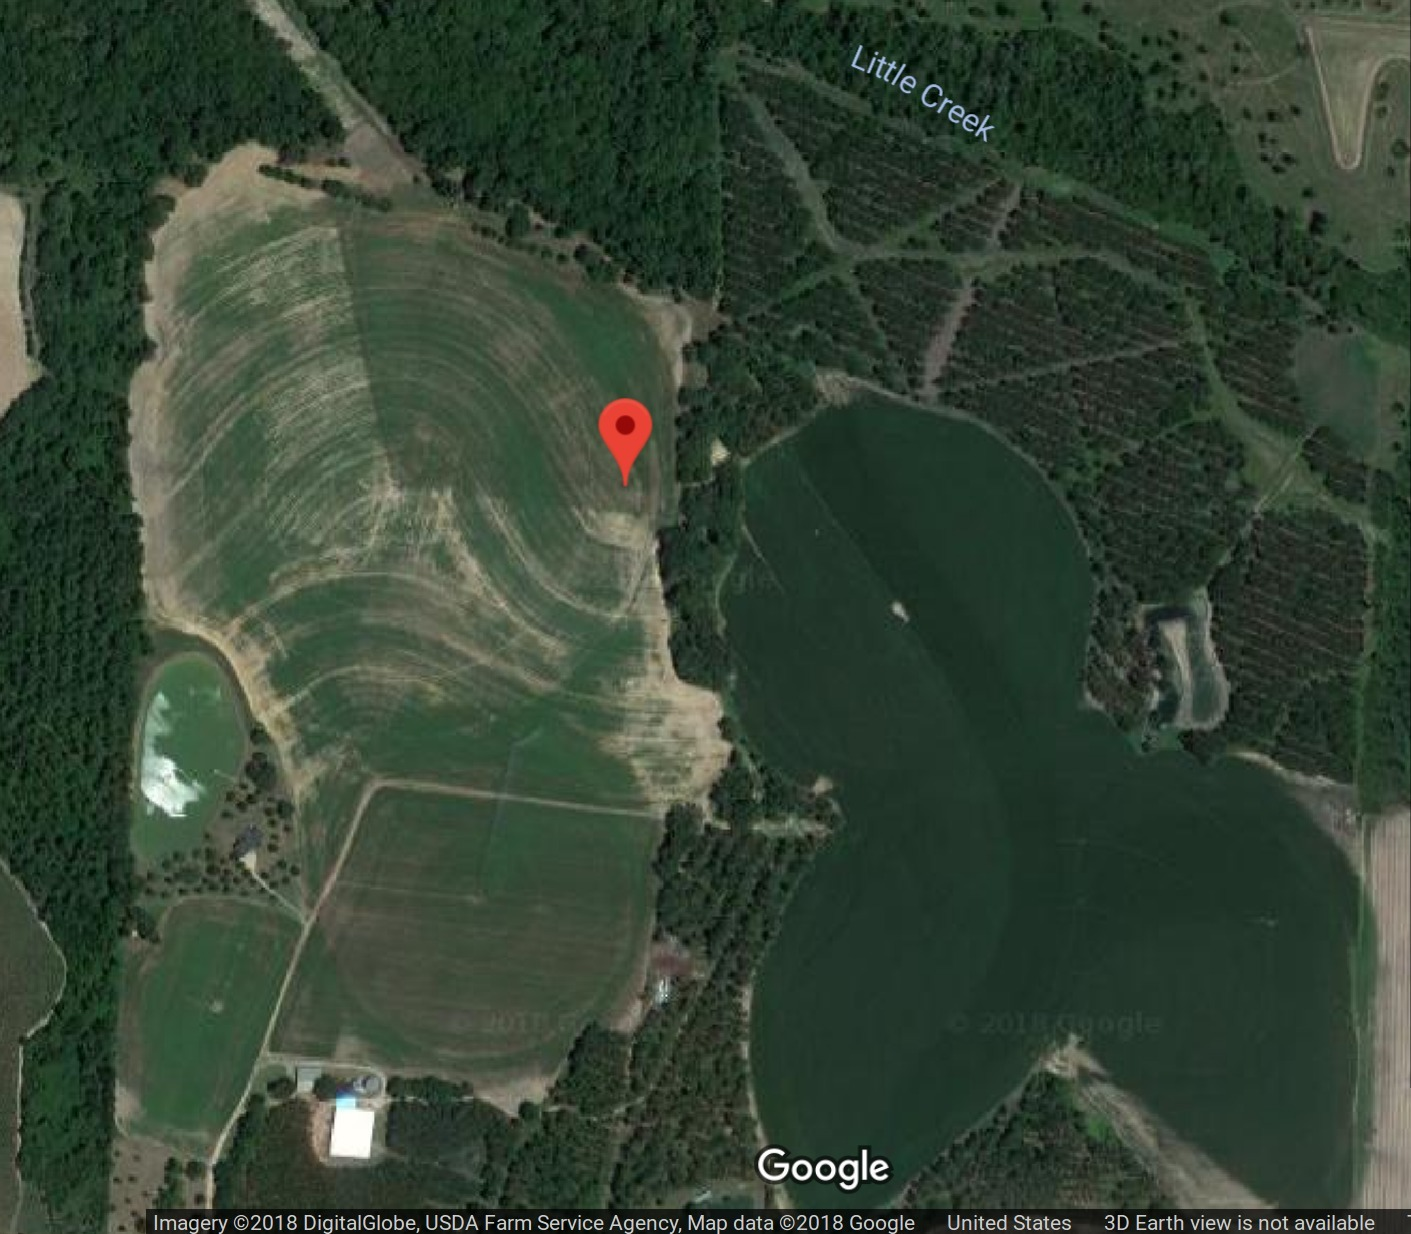 1411x1234 Sabal Trail through Randy Dowdy fields and Little Creek, Google Map, in FERC requires Sabal Trail report mixing of Randy Dowdy's subsoil and topsoil , by FERC, for WWALS.net, 6 February 2018